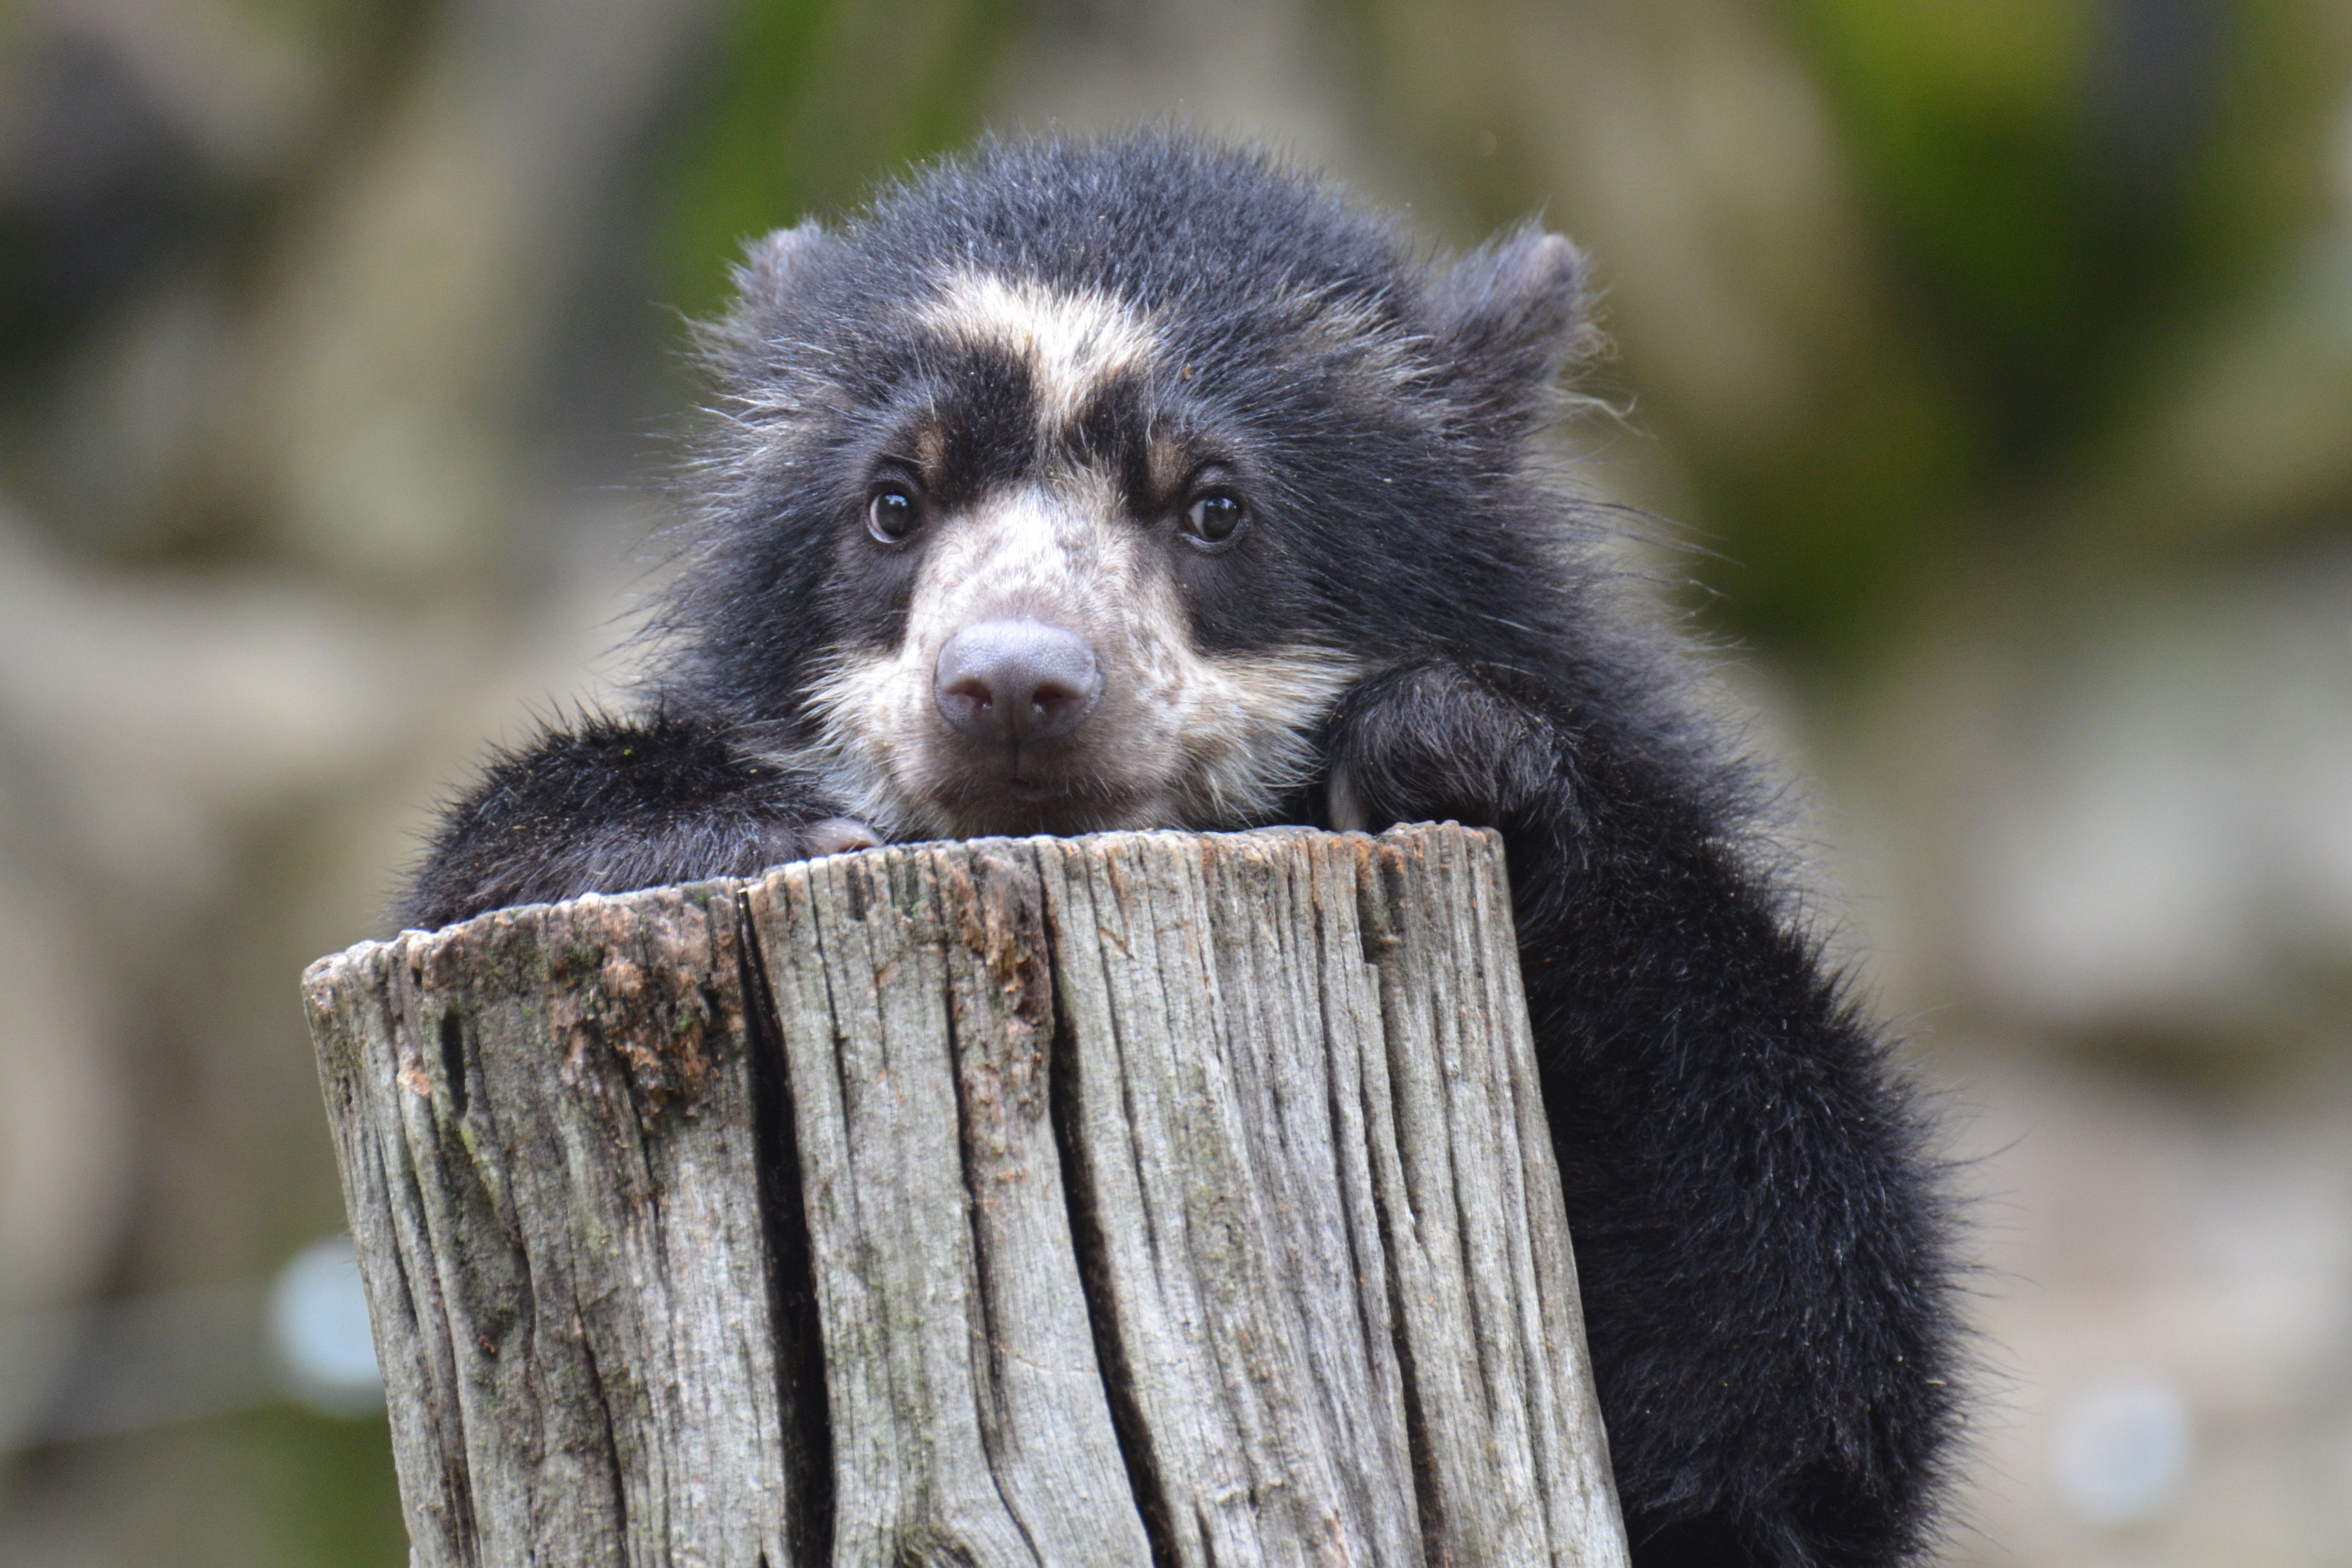 Andean bear at Smithsonian National Zoo